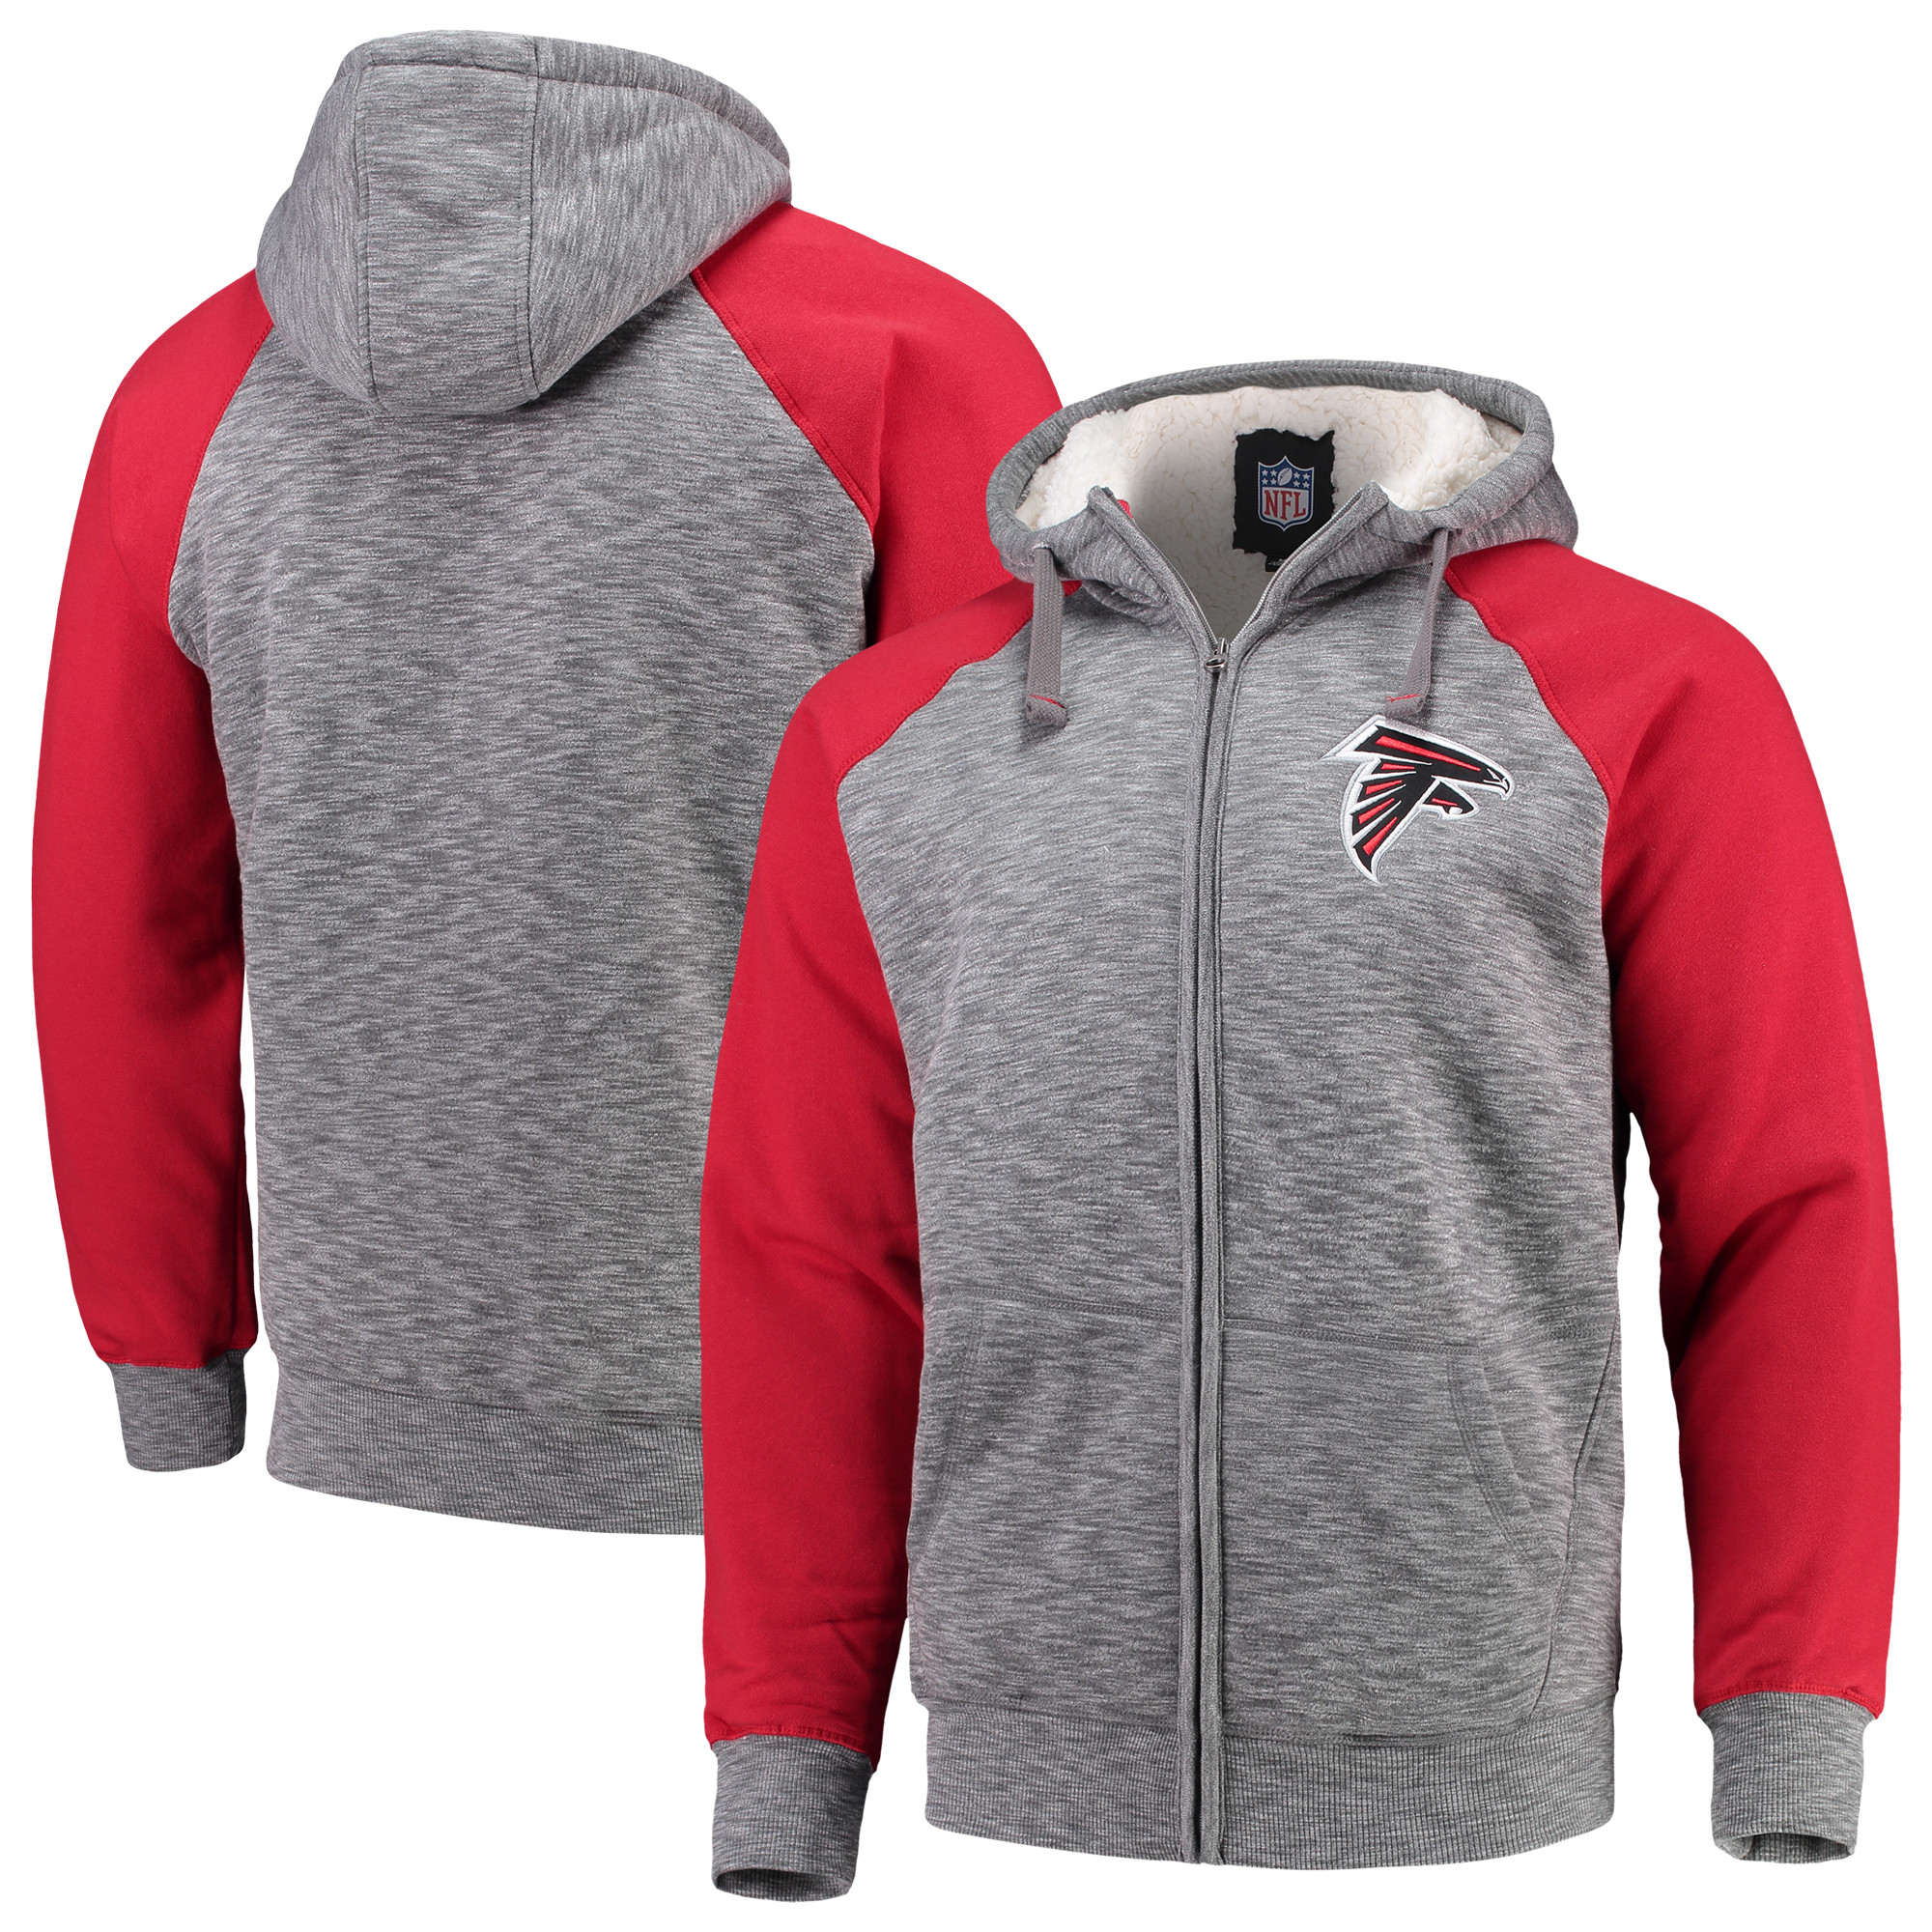 Atlanta Falcons G-III Sports by Carl Banks Turning Point Sherpa Lined Full-Zip Jacket - Heathered Gray/Red